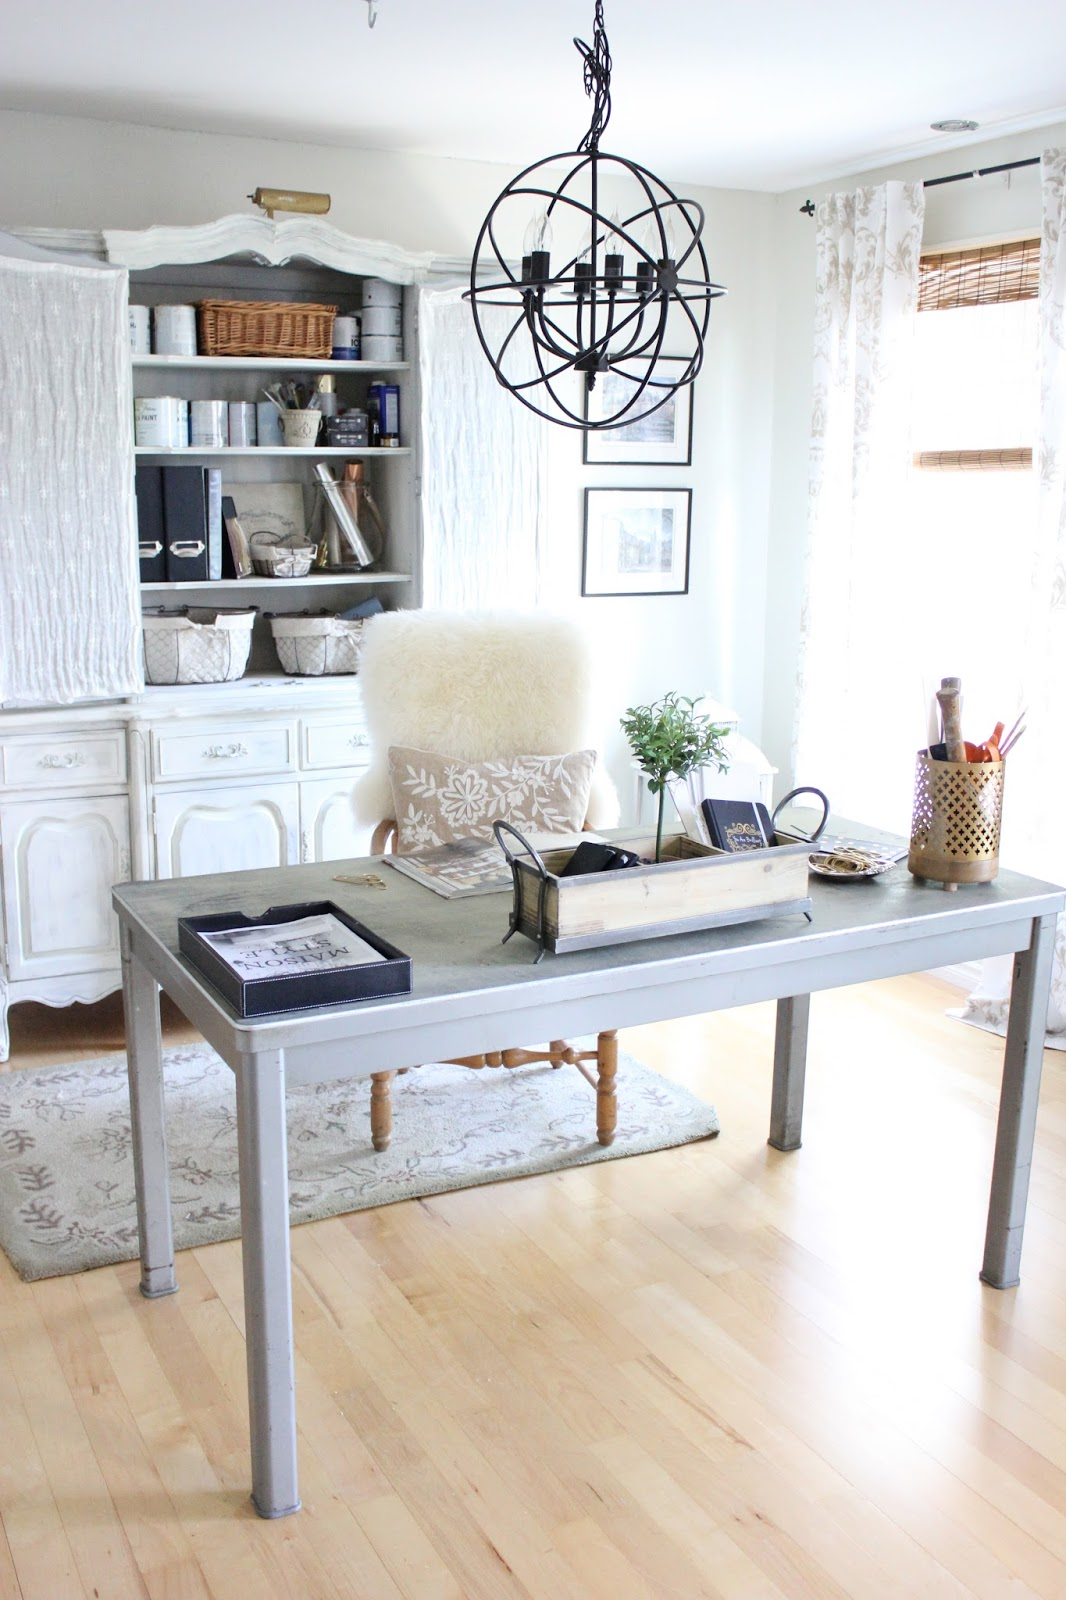 Home Office Room Design: Cozy Workspaces: Home Offices With A Rustic Touch